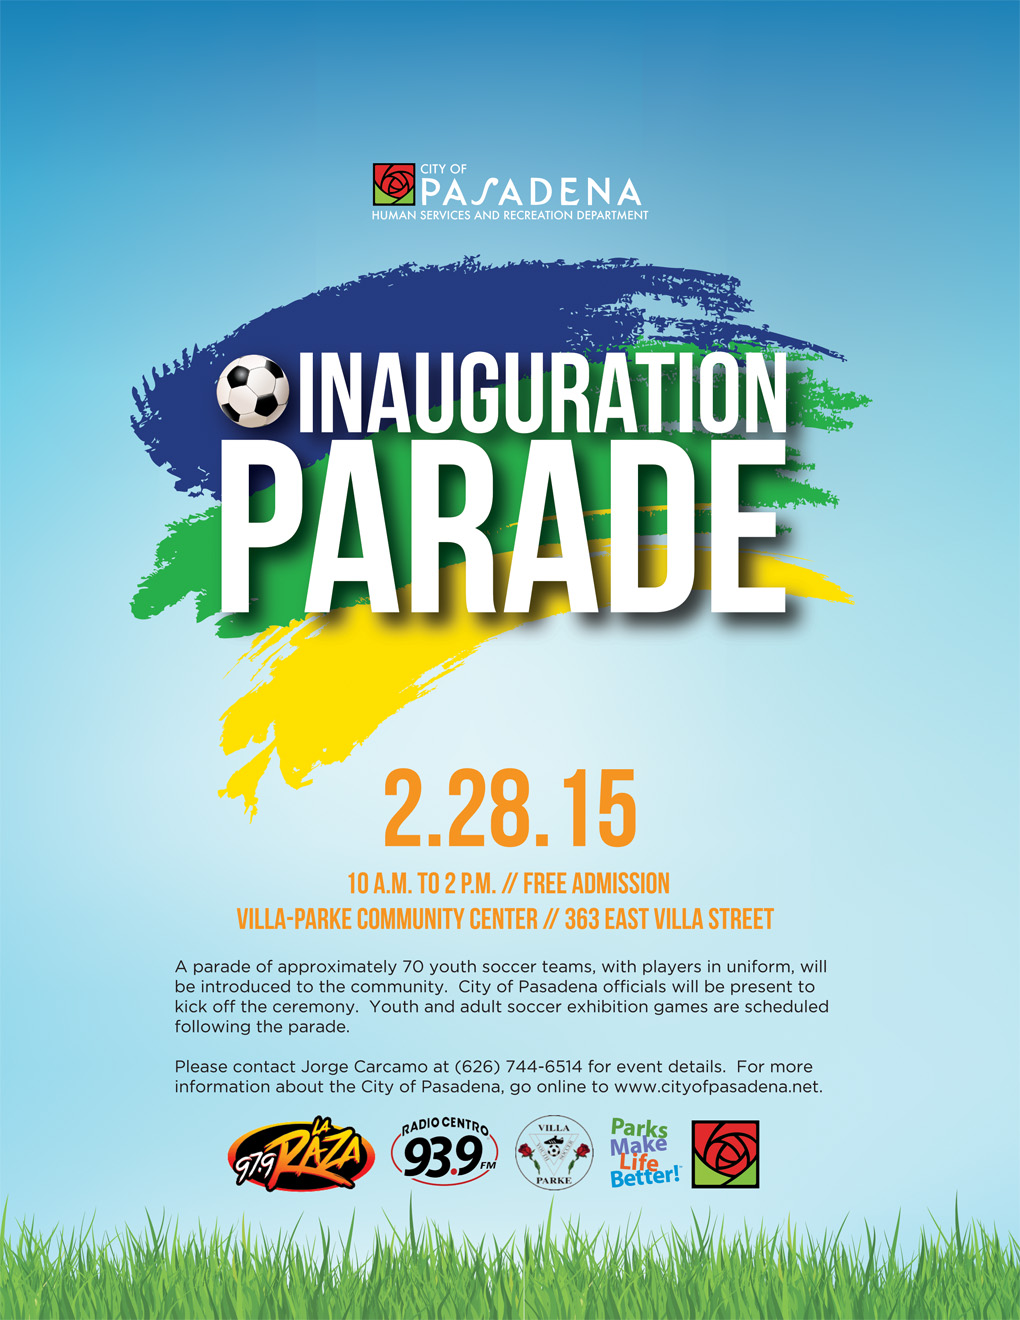 public invited to opening day parade exhibition games for youth